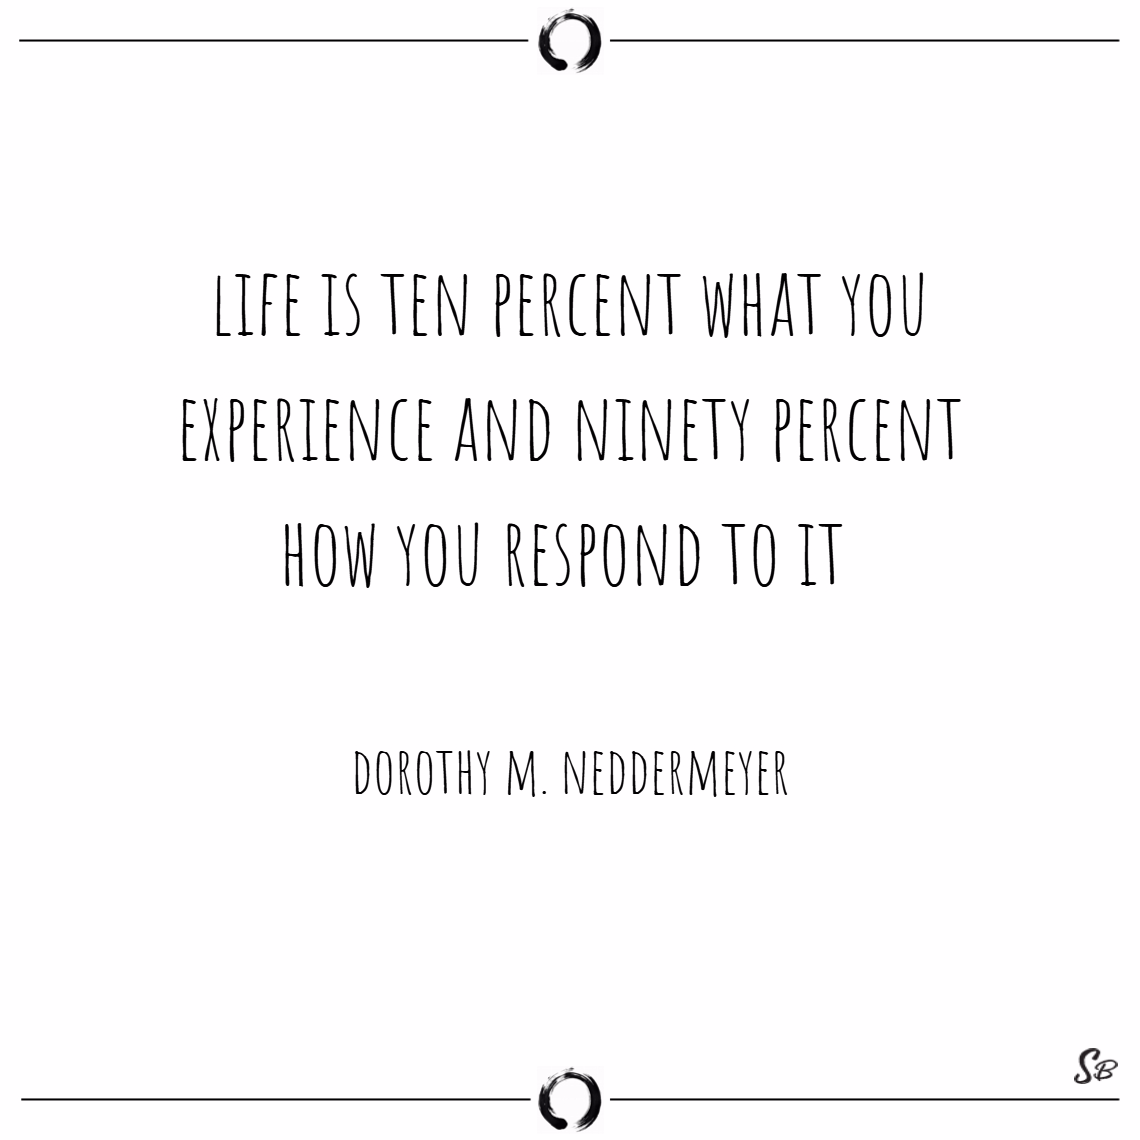 Life is ten percent what you experience and ninety percent how you respond to it. – dorothy m. neddermeyer